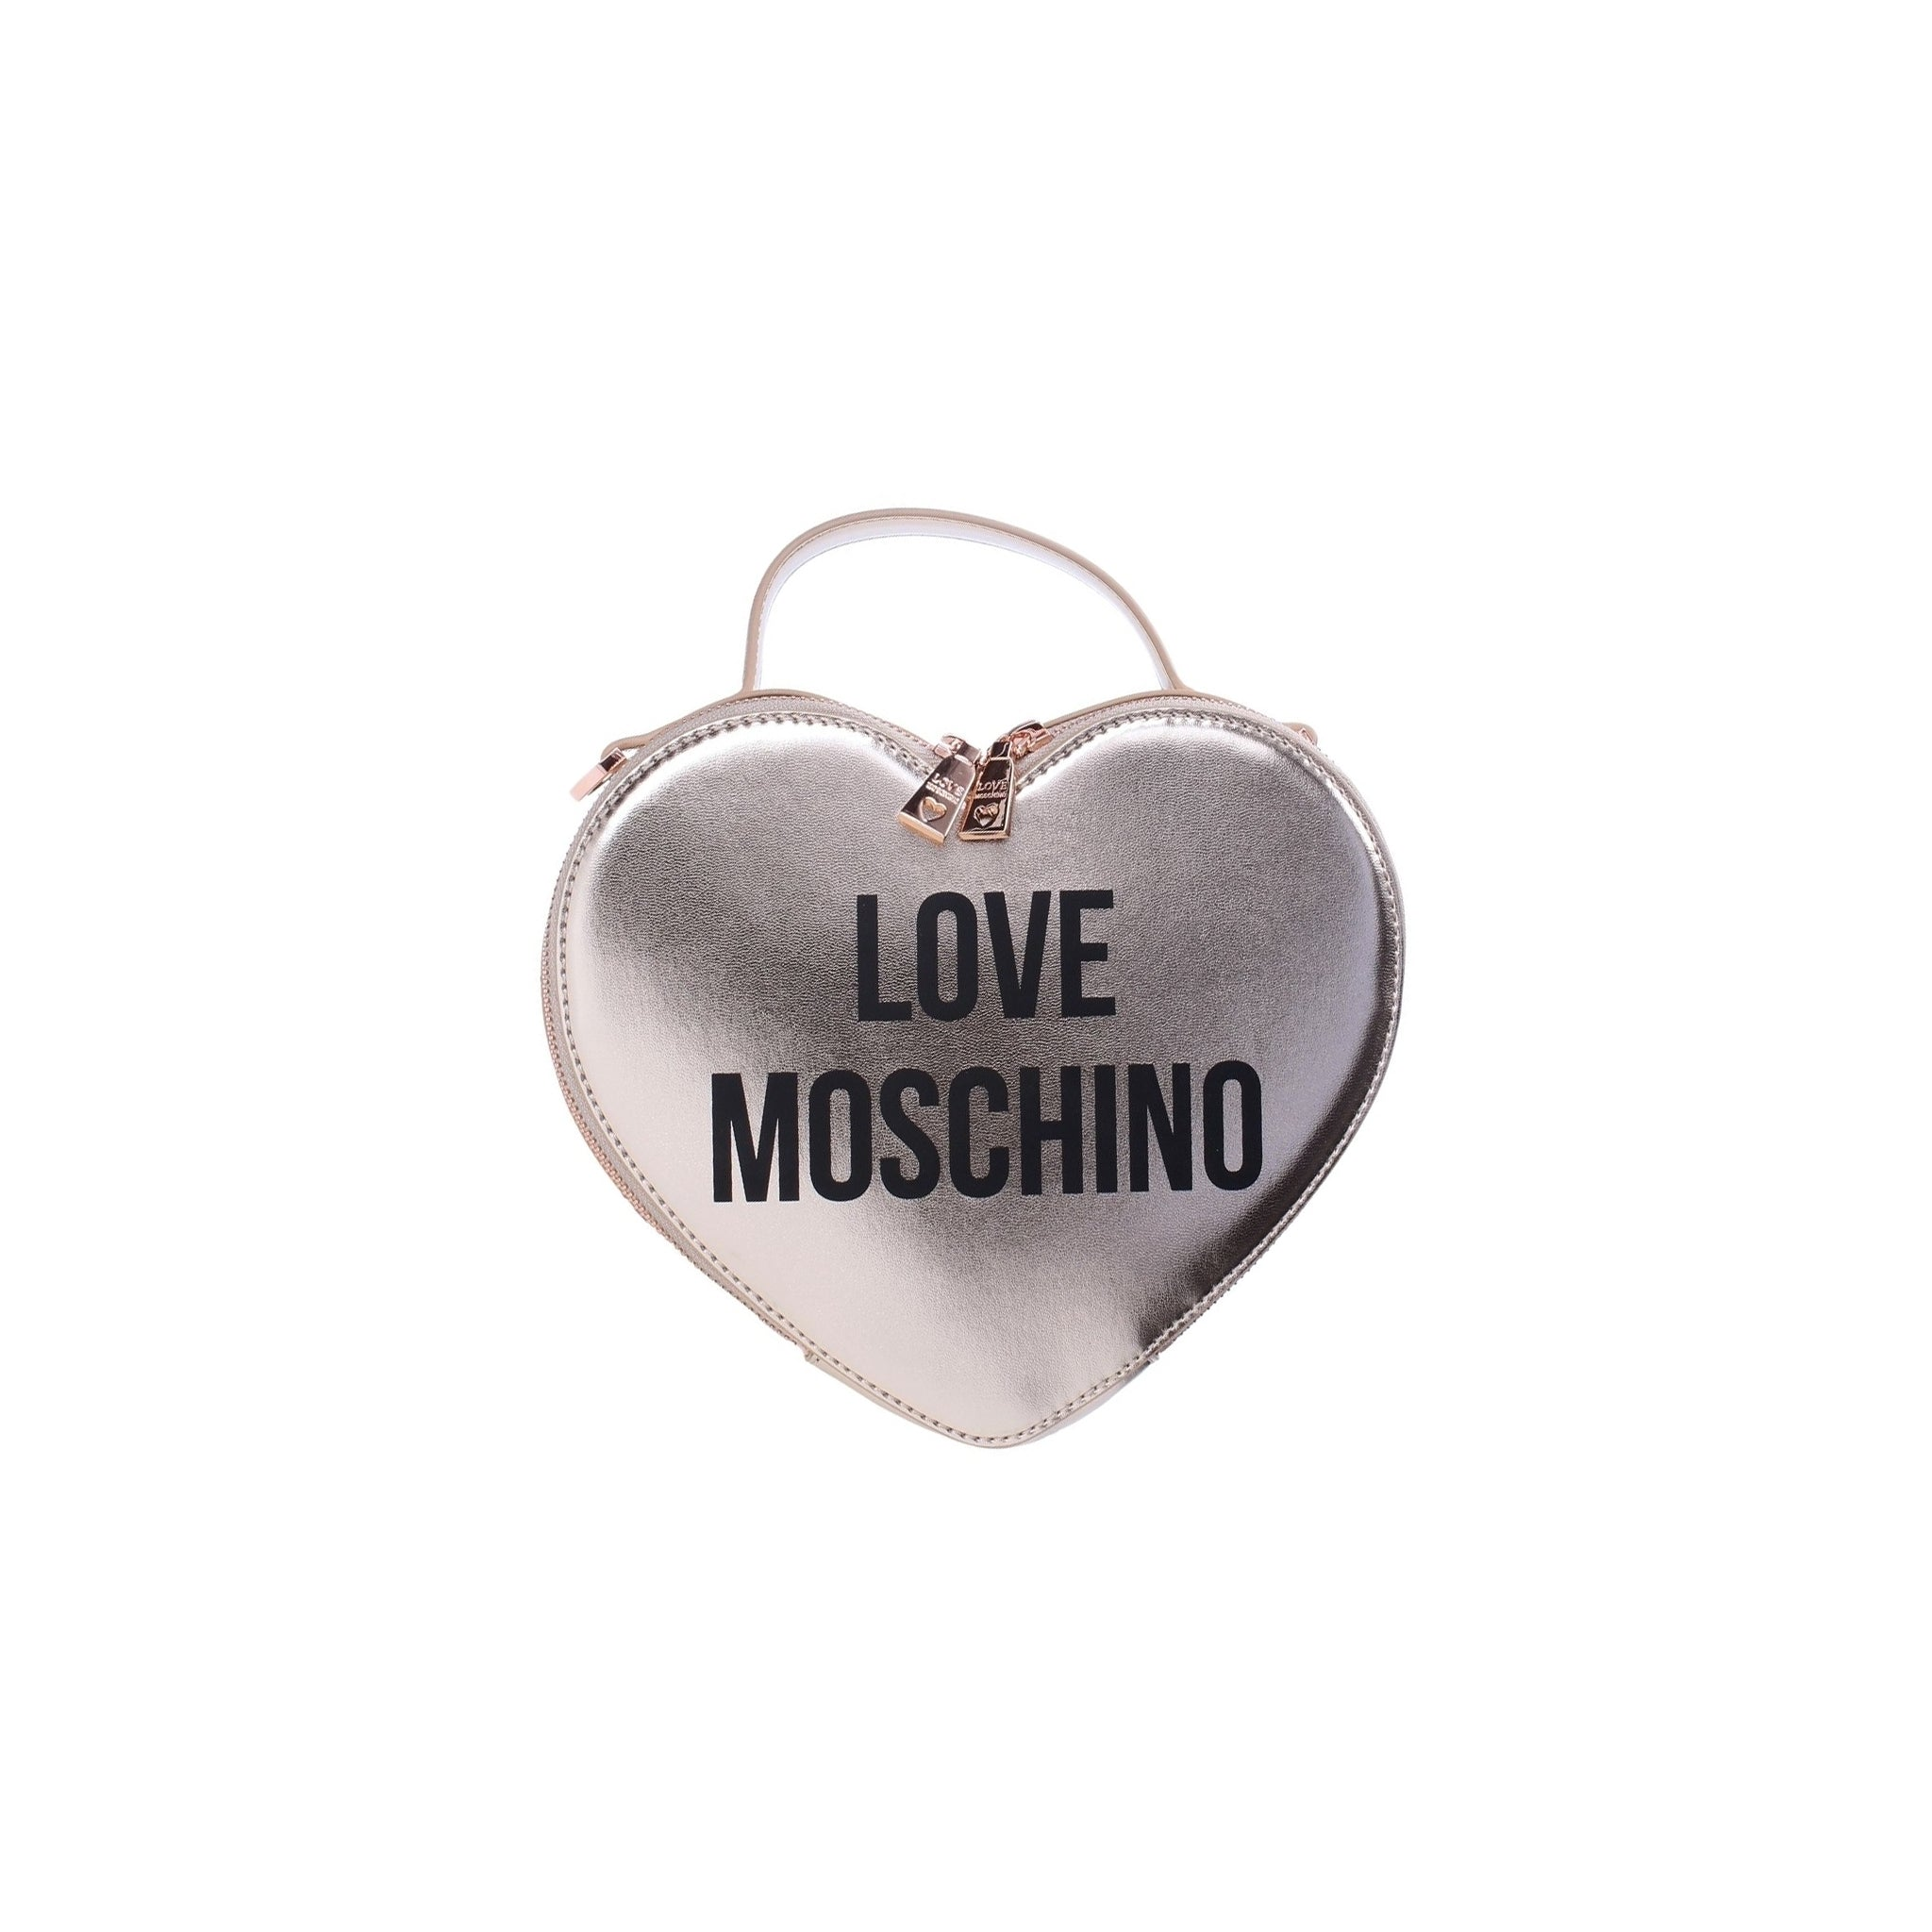 Love Moschino Heart Shape Handbag